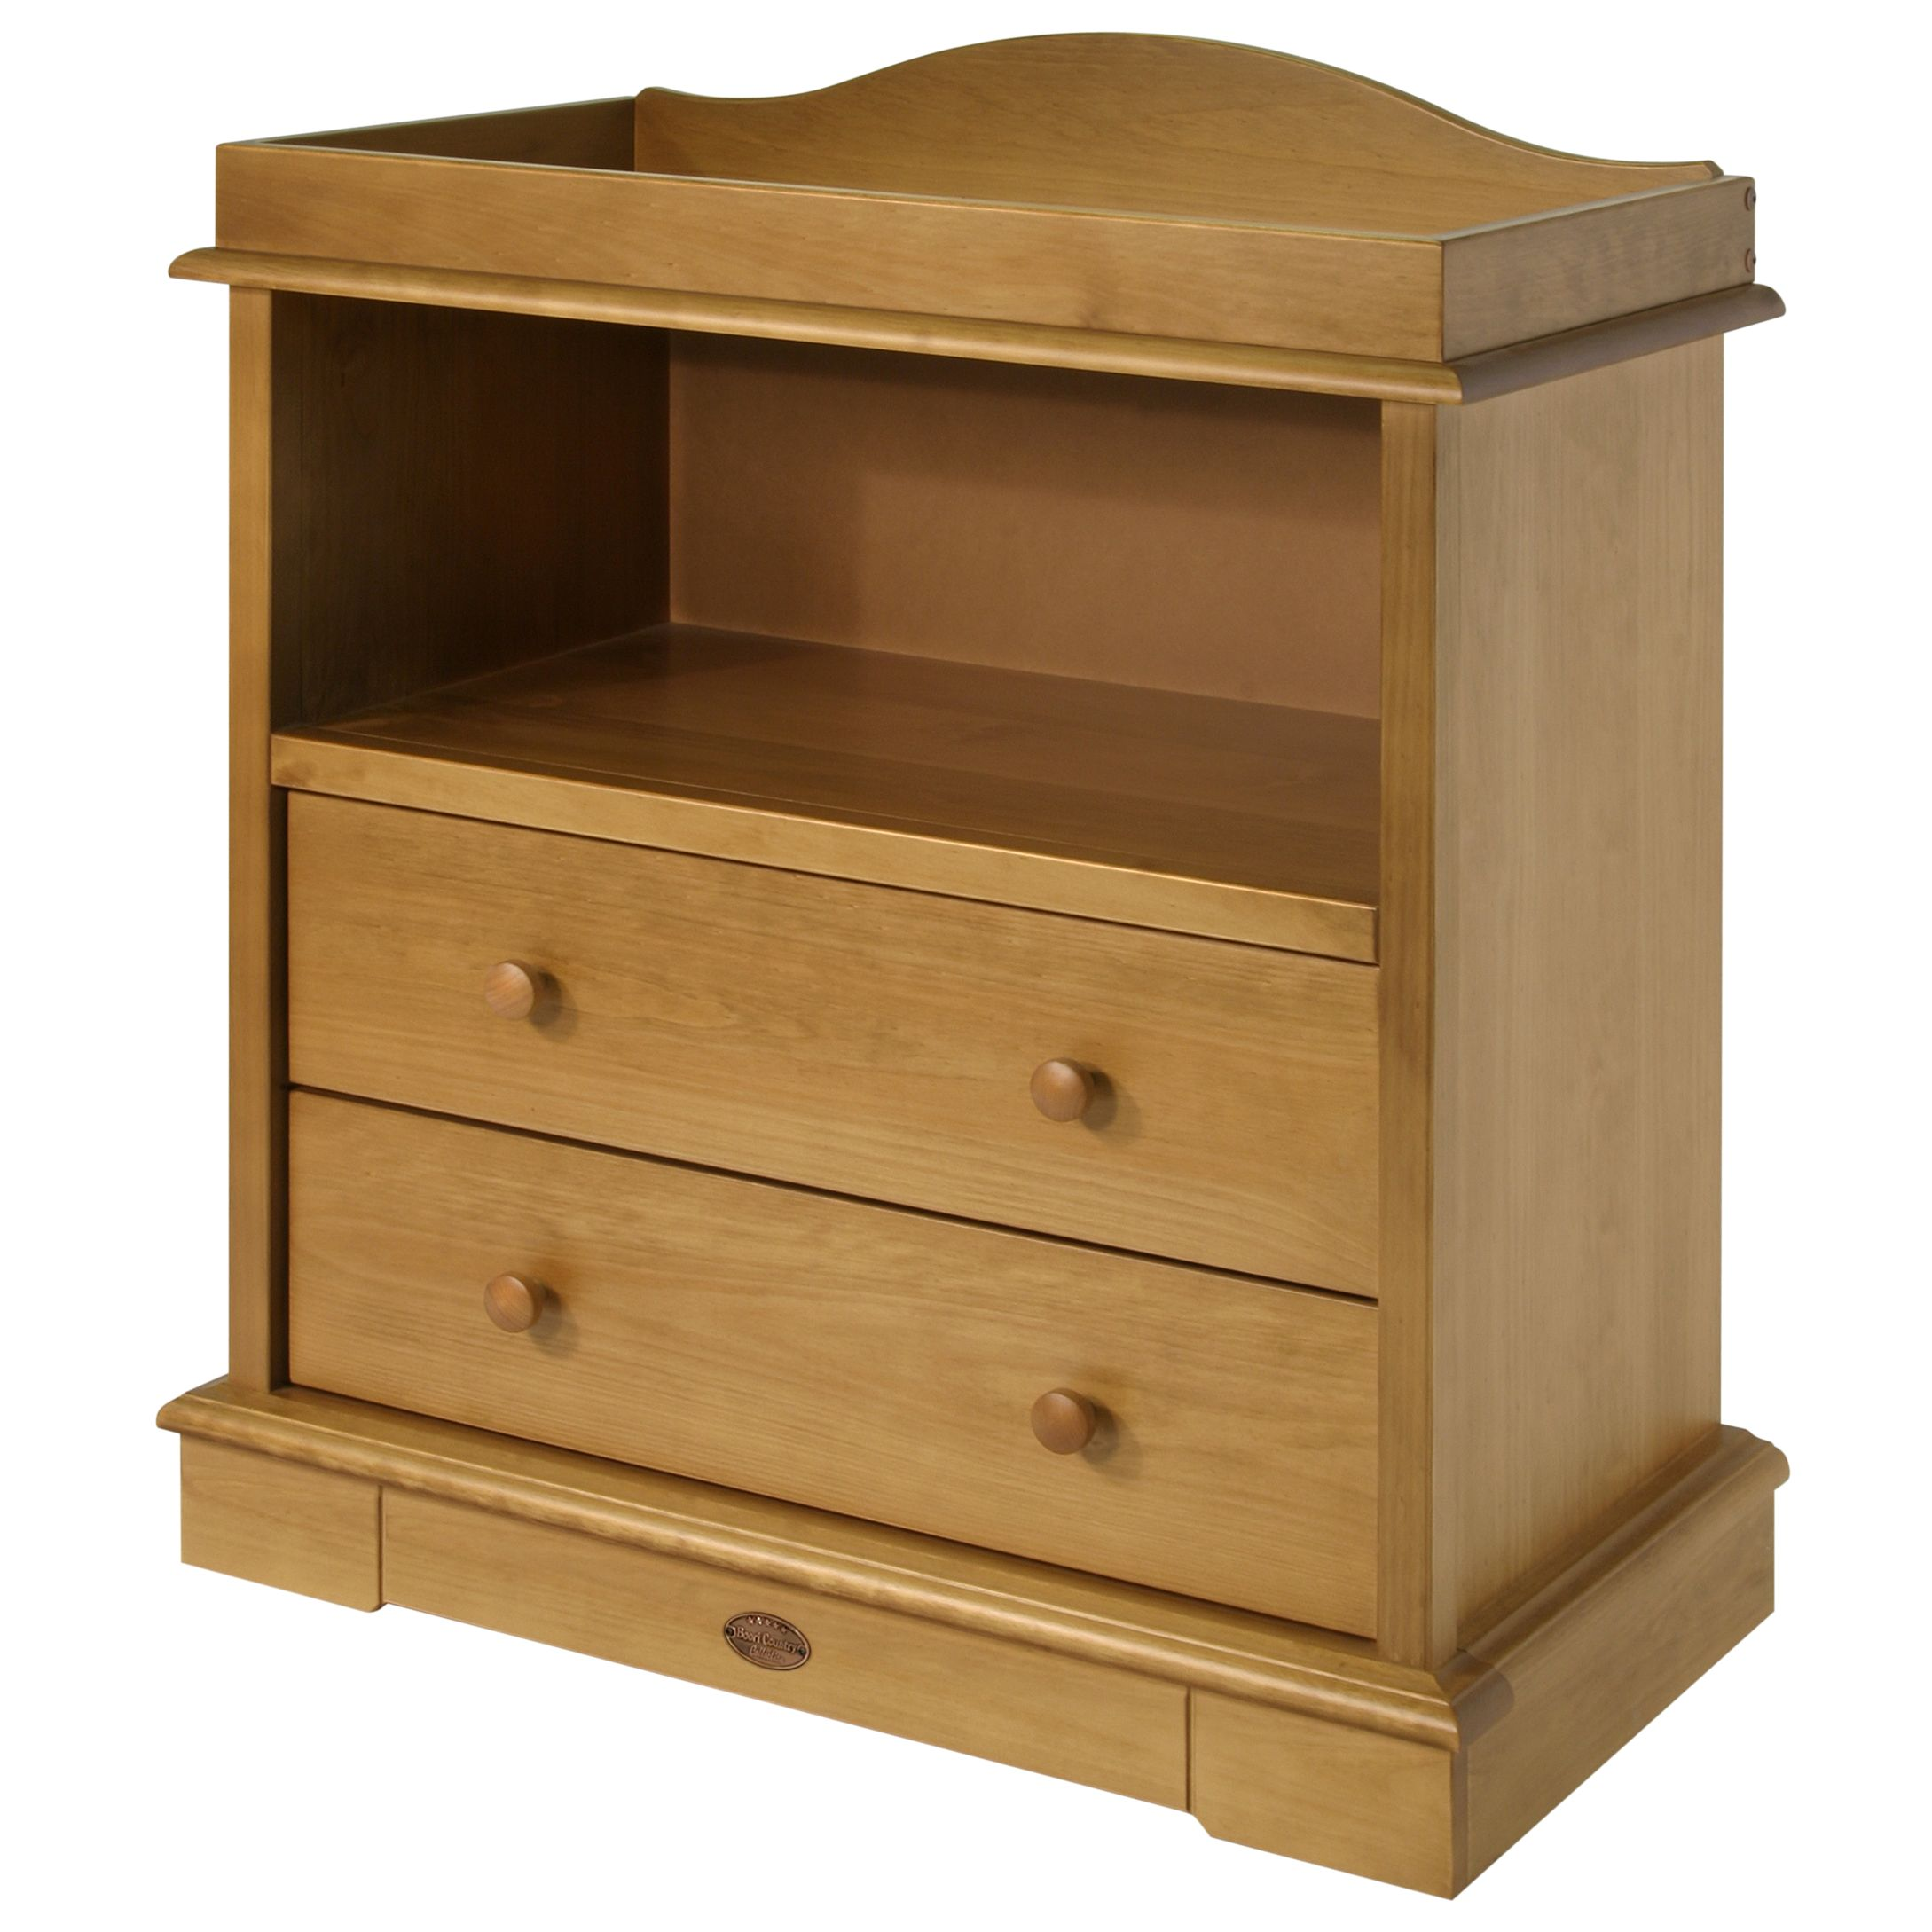 2 Drawer Chest and Changing Unit, Heritage